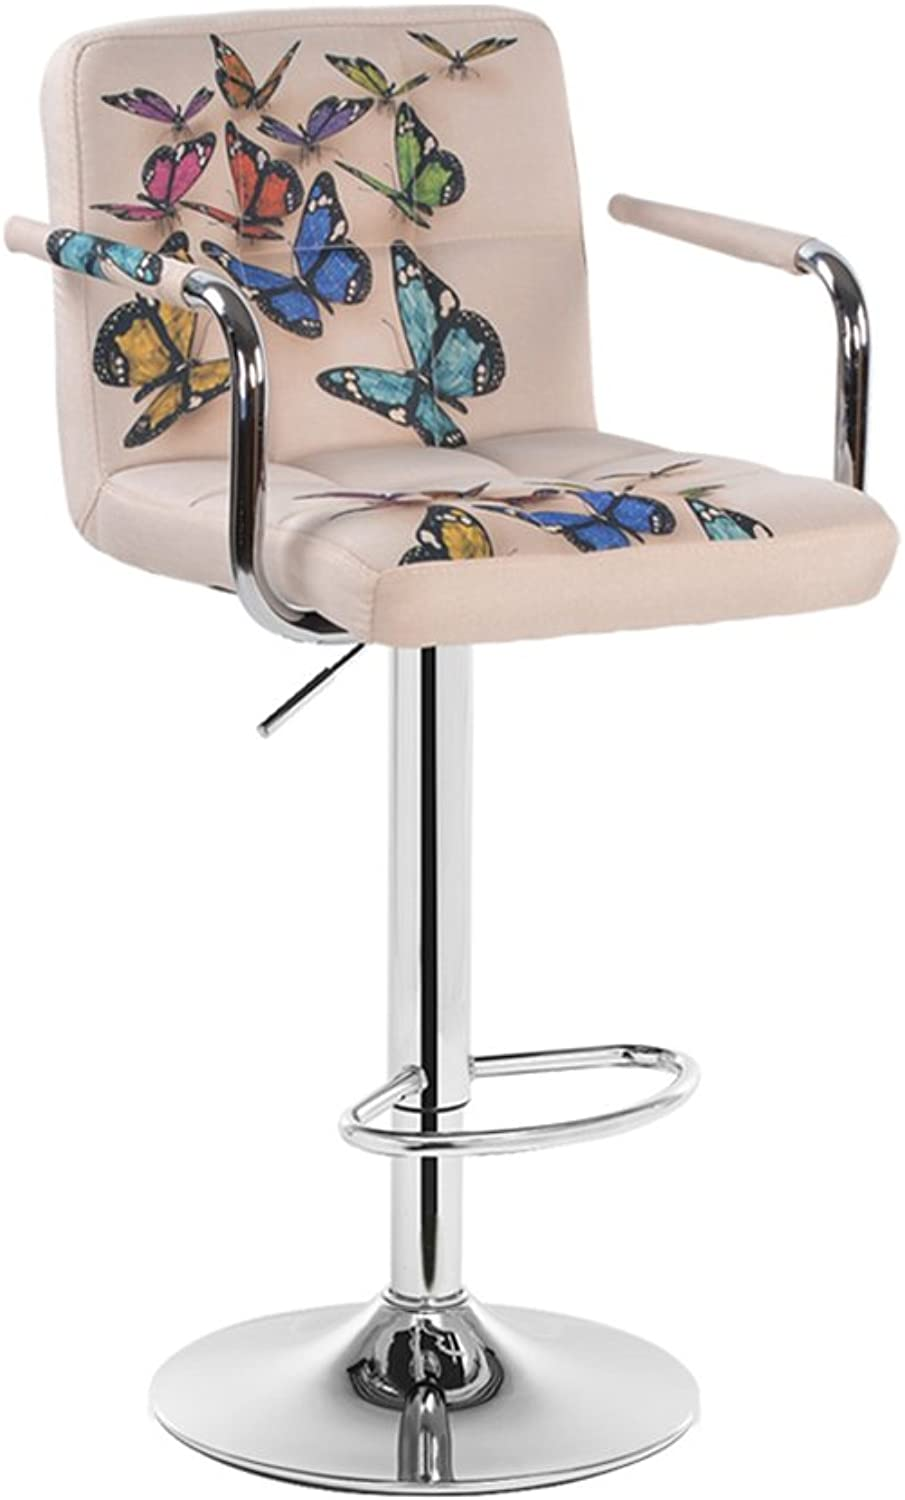 LHA Barstools Bar Chair Backrest Height Adjustable - Butterfly Decoration Bar Furniture